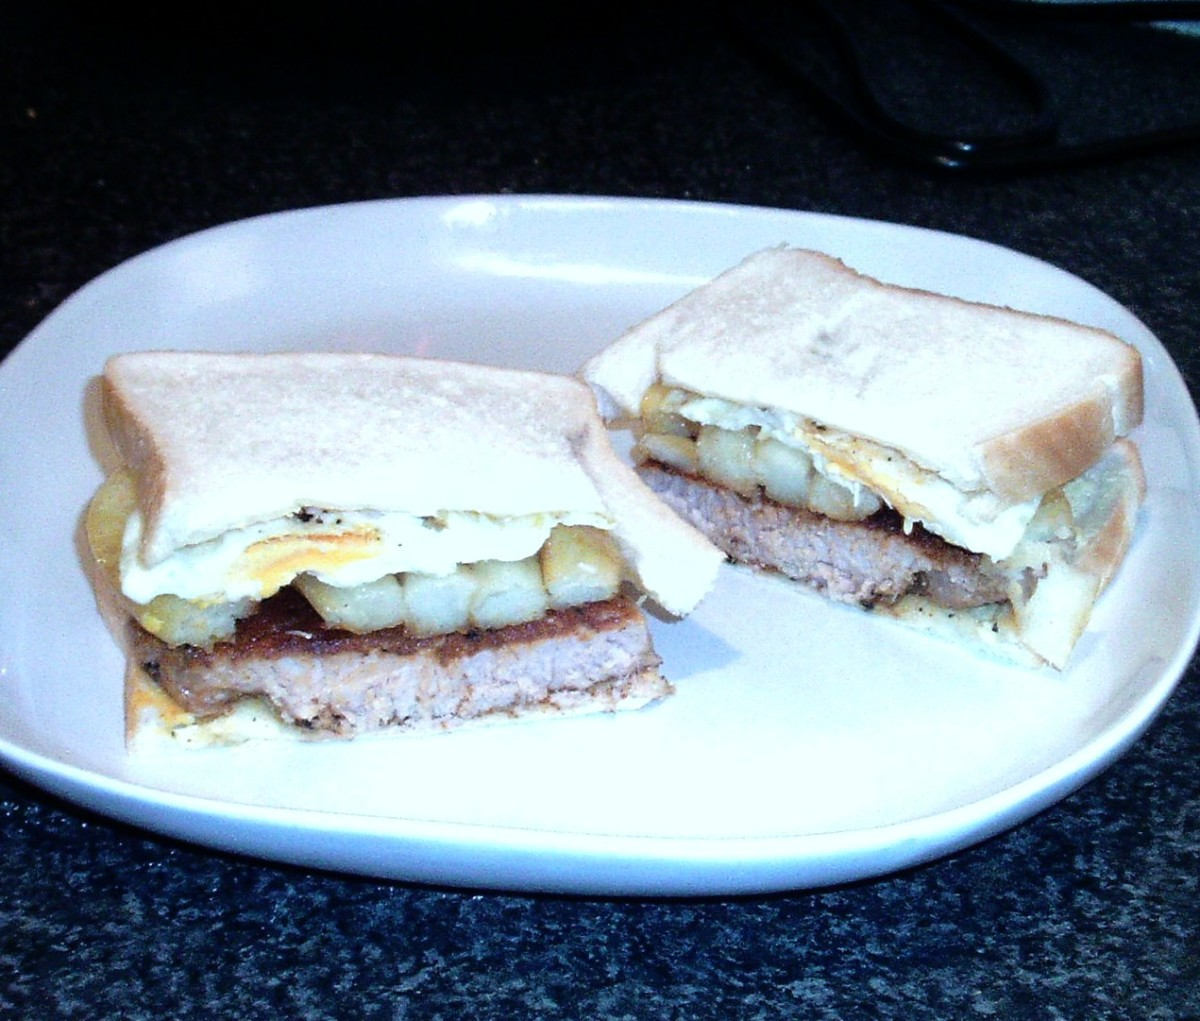 Steak, egg and chips butty is sliced and served